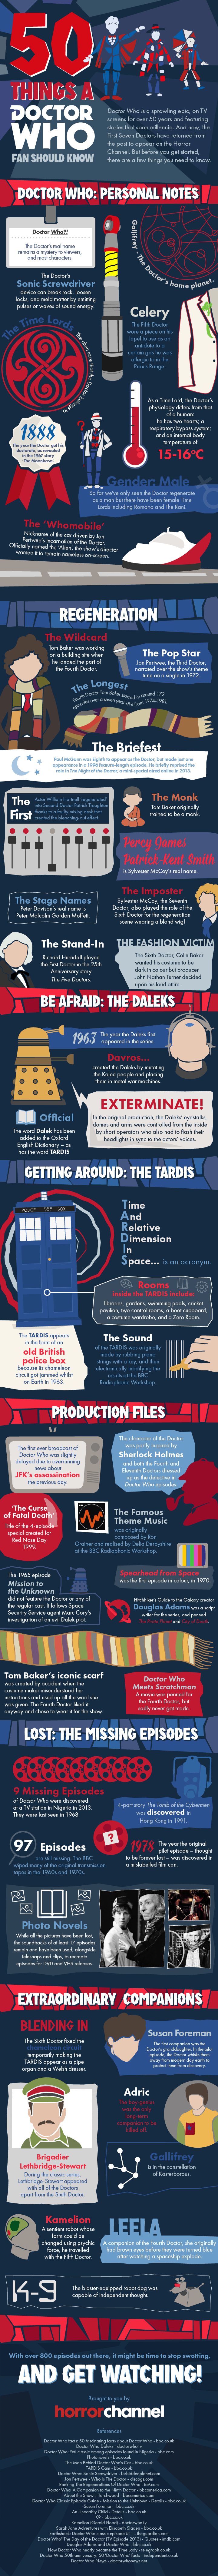 Doctor Who infographic: 50 things every fan should know